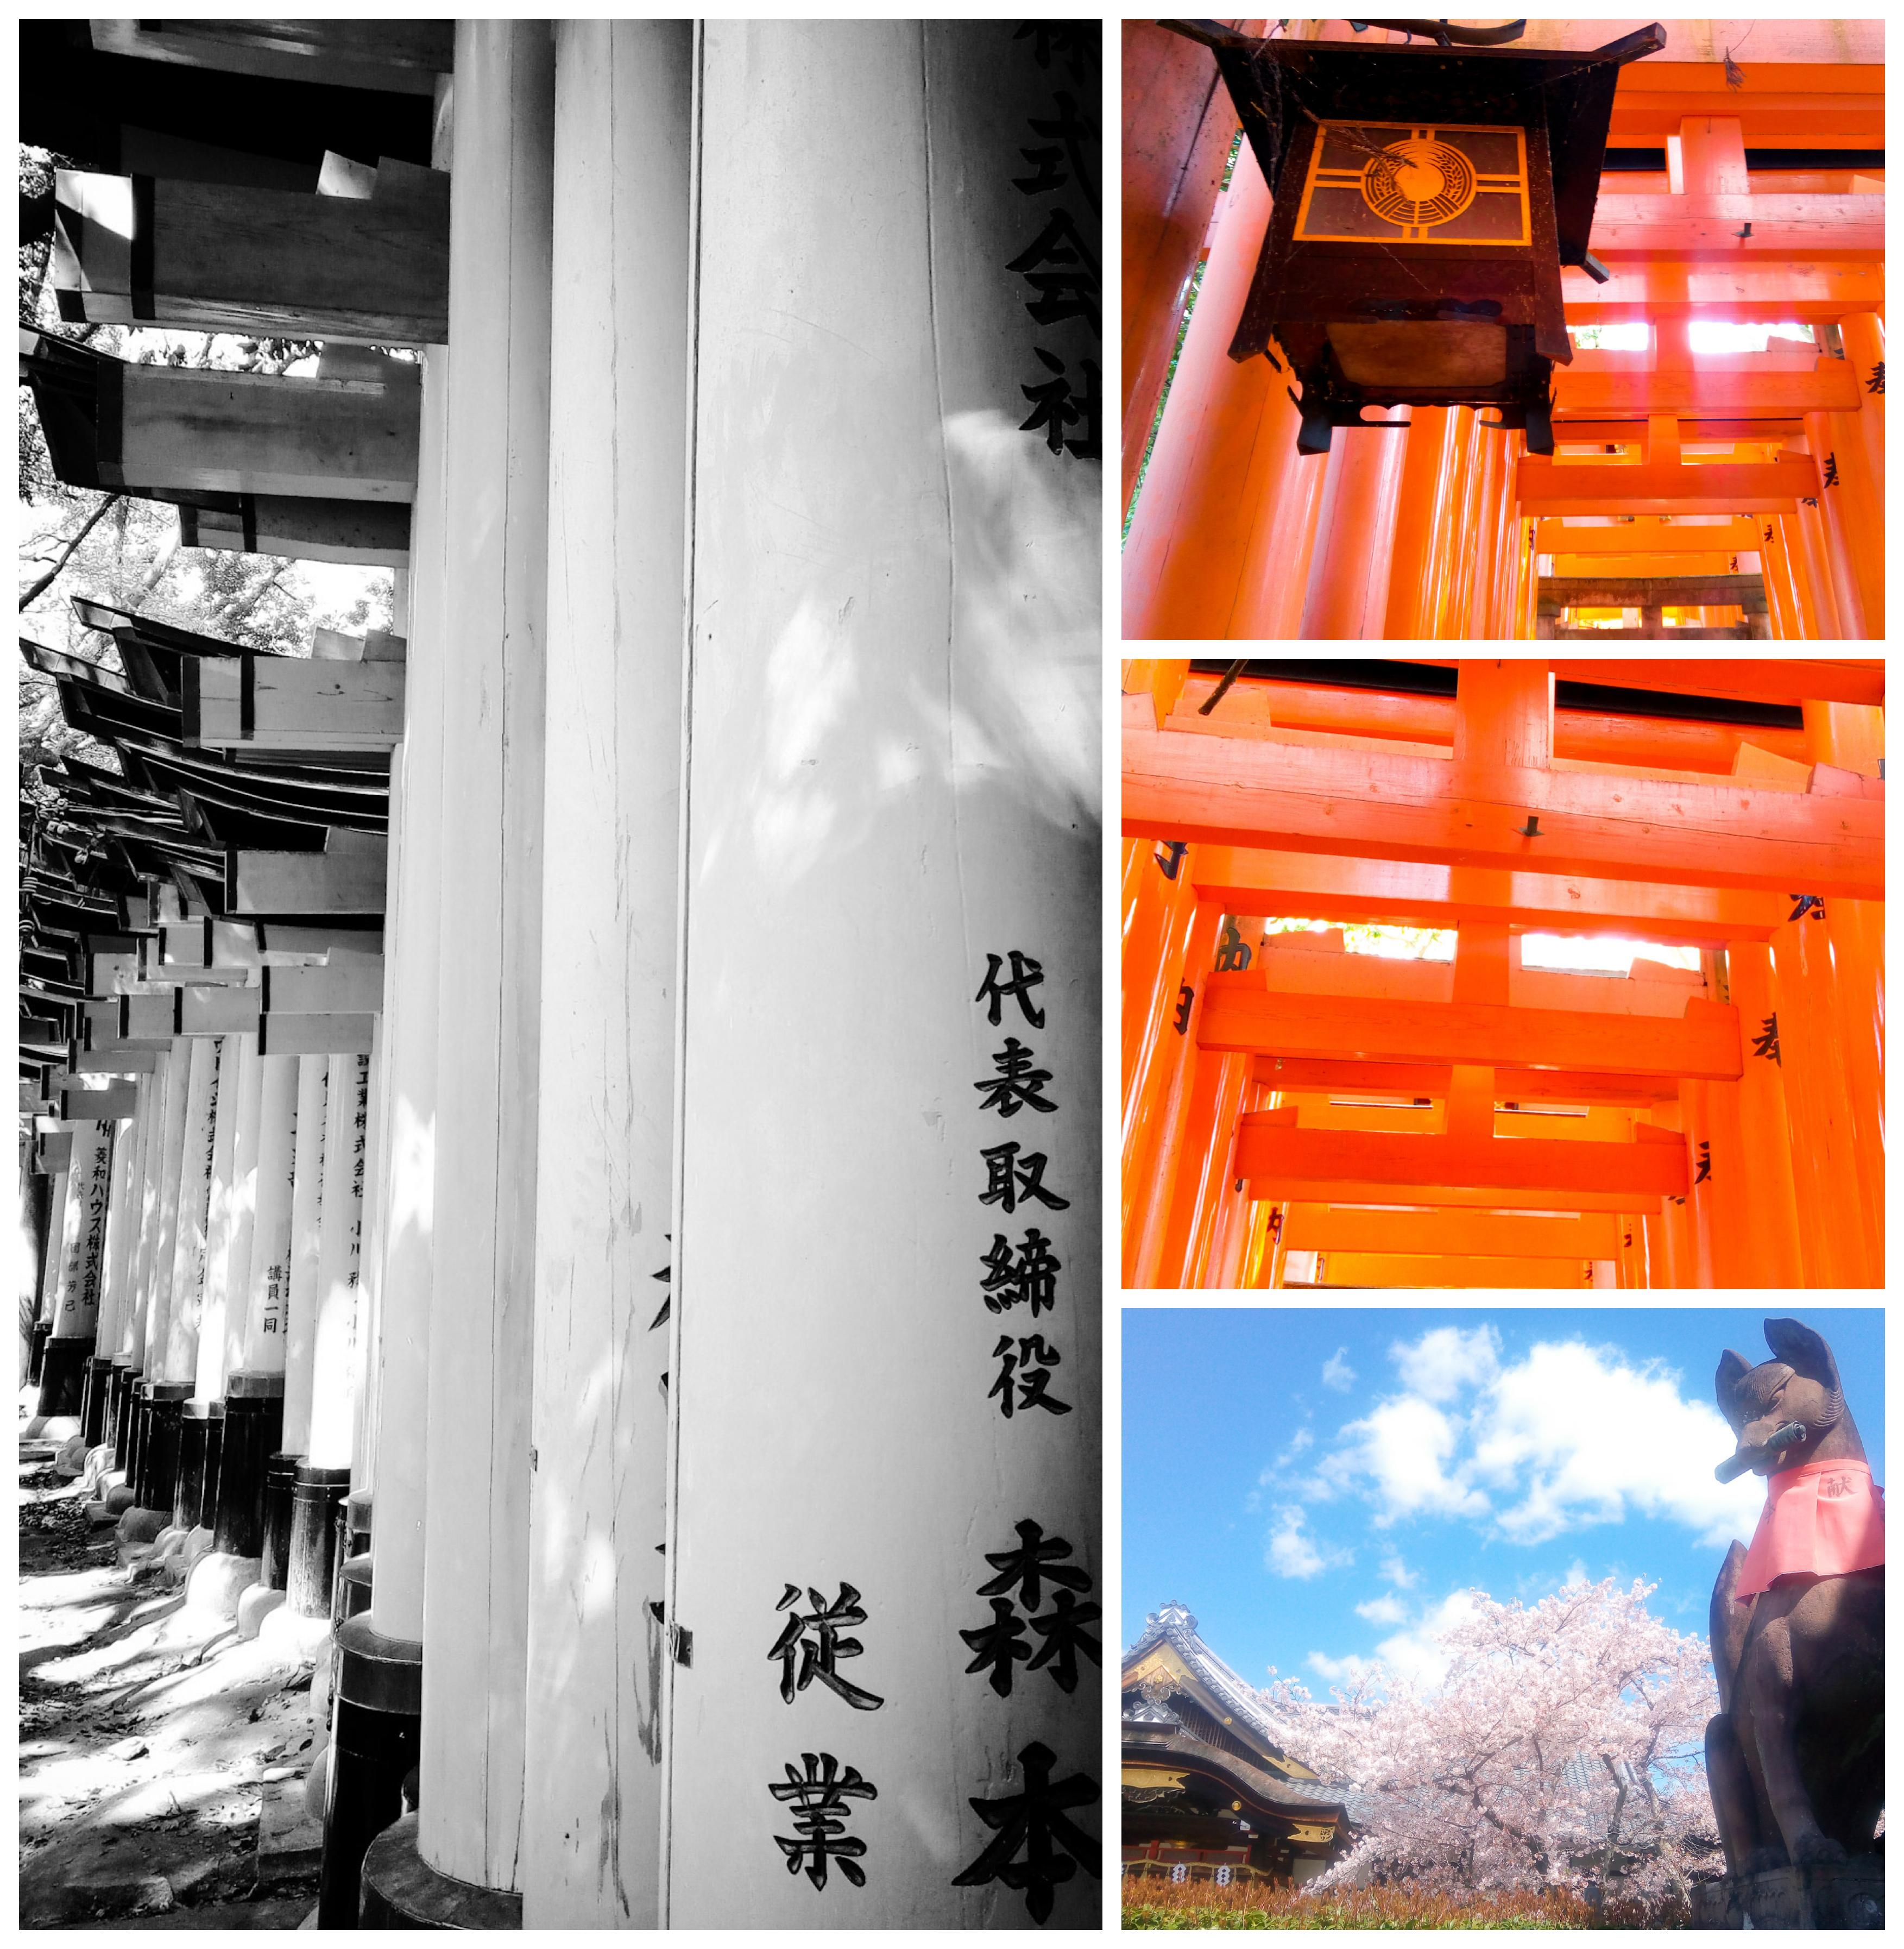 Urban photos - Fushimi Ward, Kyoto, Japan.'Fushimi Inari Taisha.' Located at the foot of Inari mountain, this shrine, dating back to 711, is most famous for its path of Torii gates. The path 'Senbon torii' contains over 1000 torii gates - which have been donated to the shrine since the Edo period. sketchbookexplorer.com @davidasutton @sketchbookexplorer Facebook.com/davidanthonysutton #japan #kyoto #fushimiward #fushimiinaritaisha #travel #travelblog #photography #cheeryblossom #cherryblossomseason